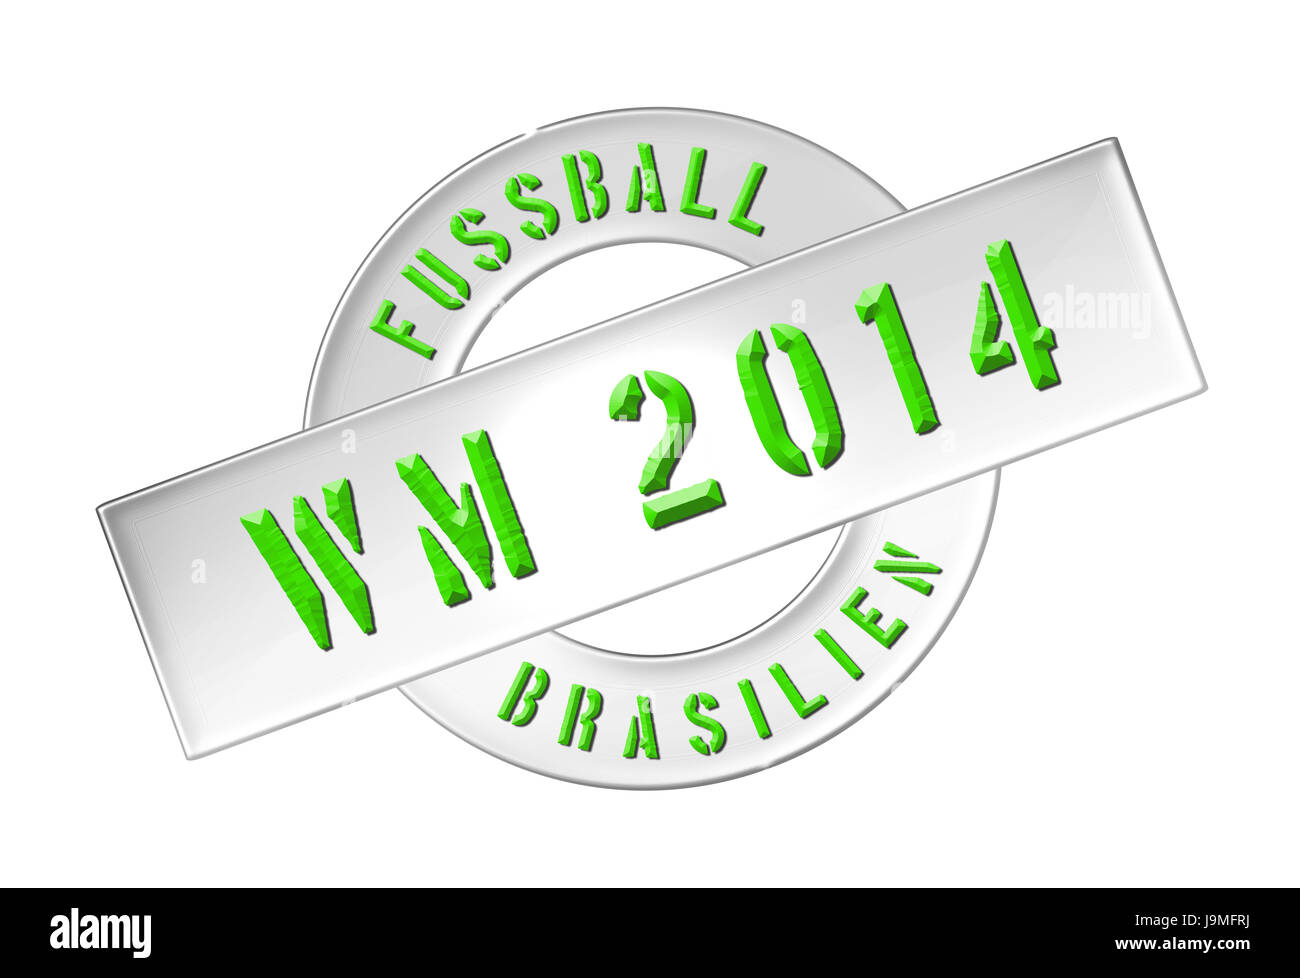 world cup 2014 - Stock Image